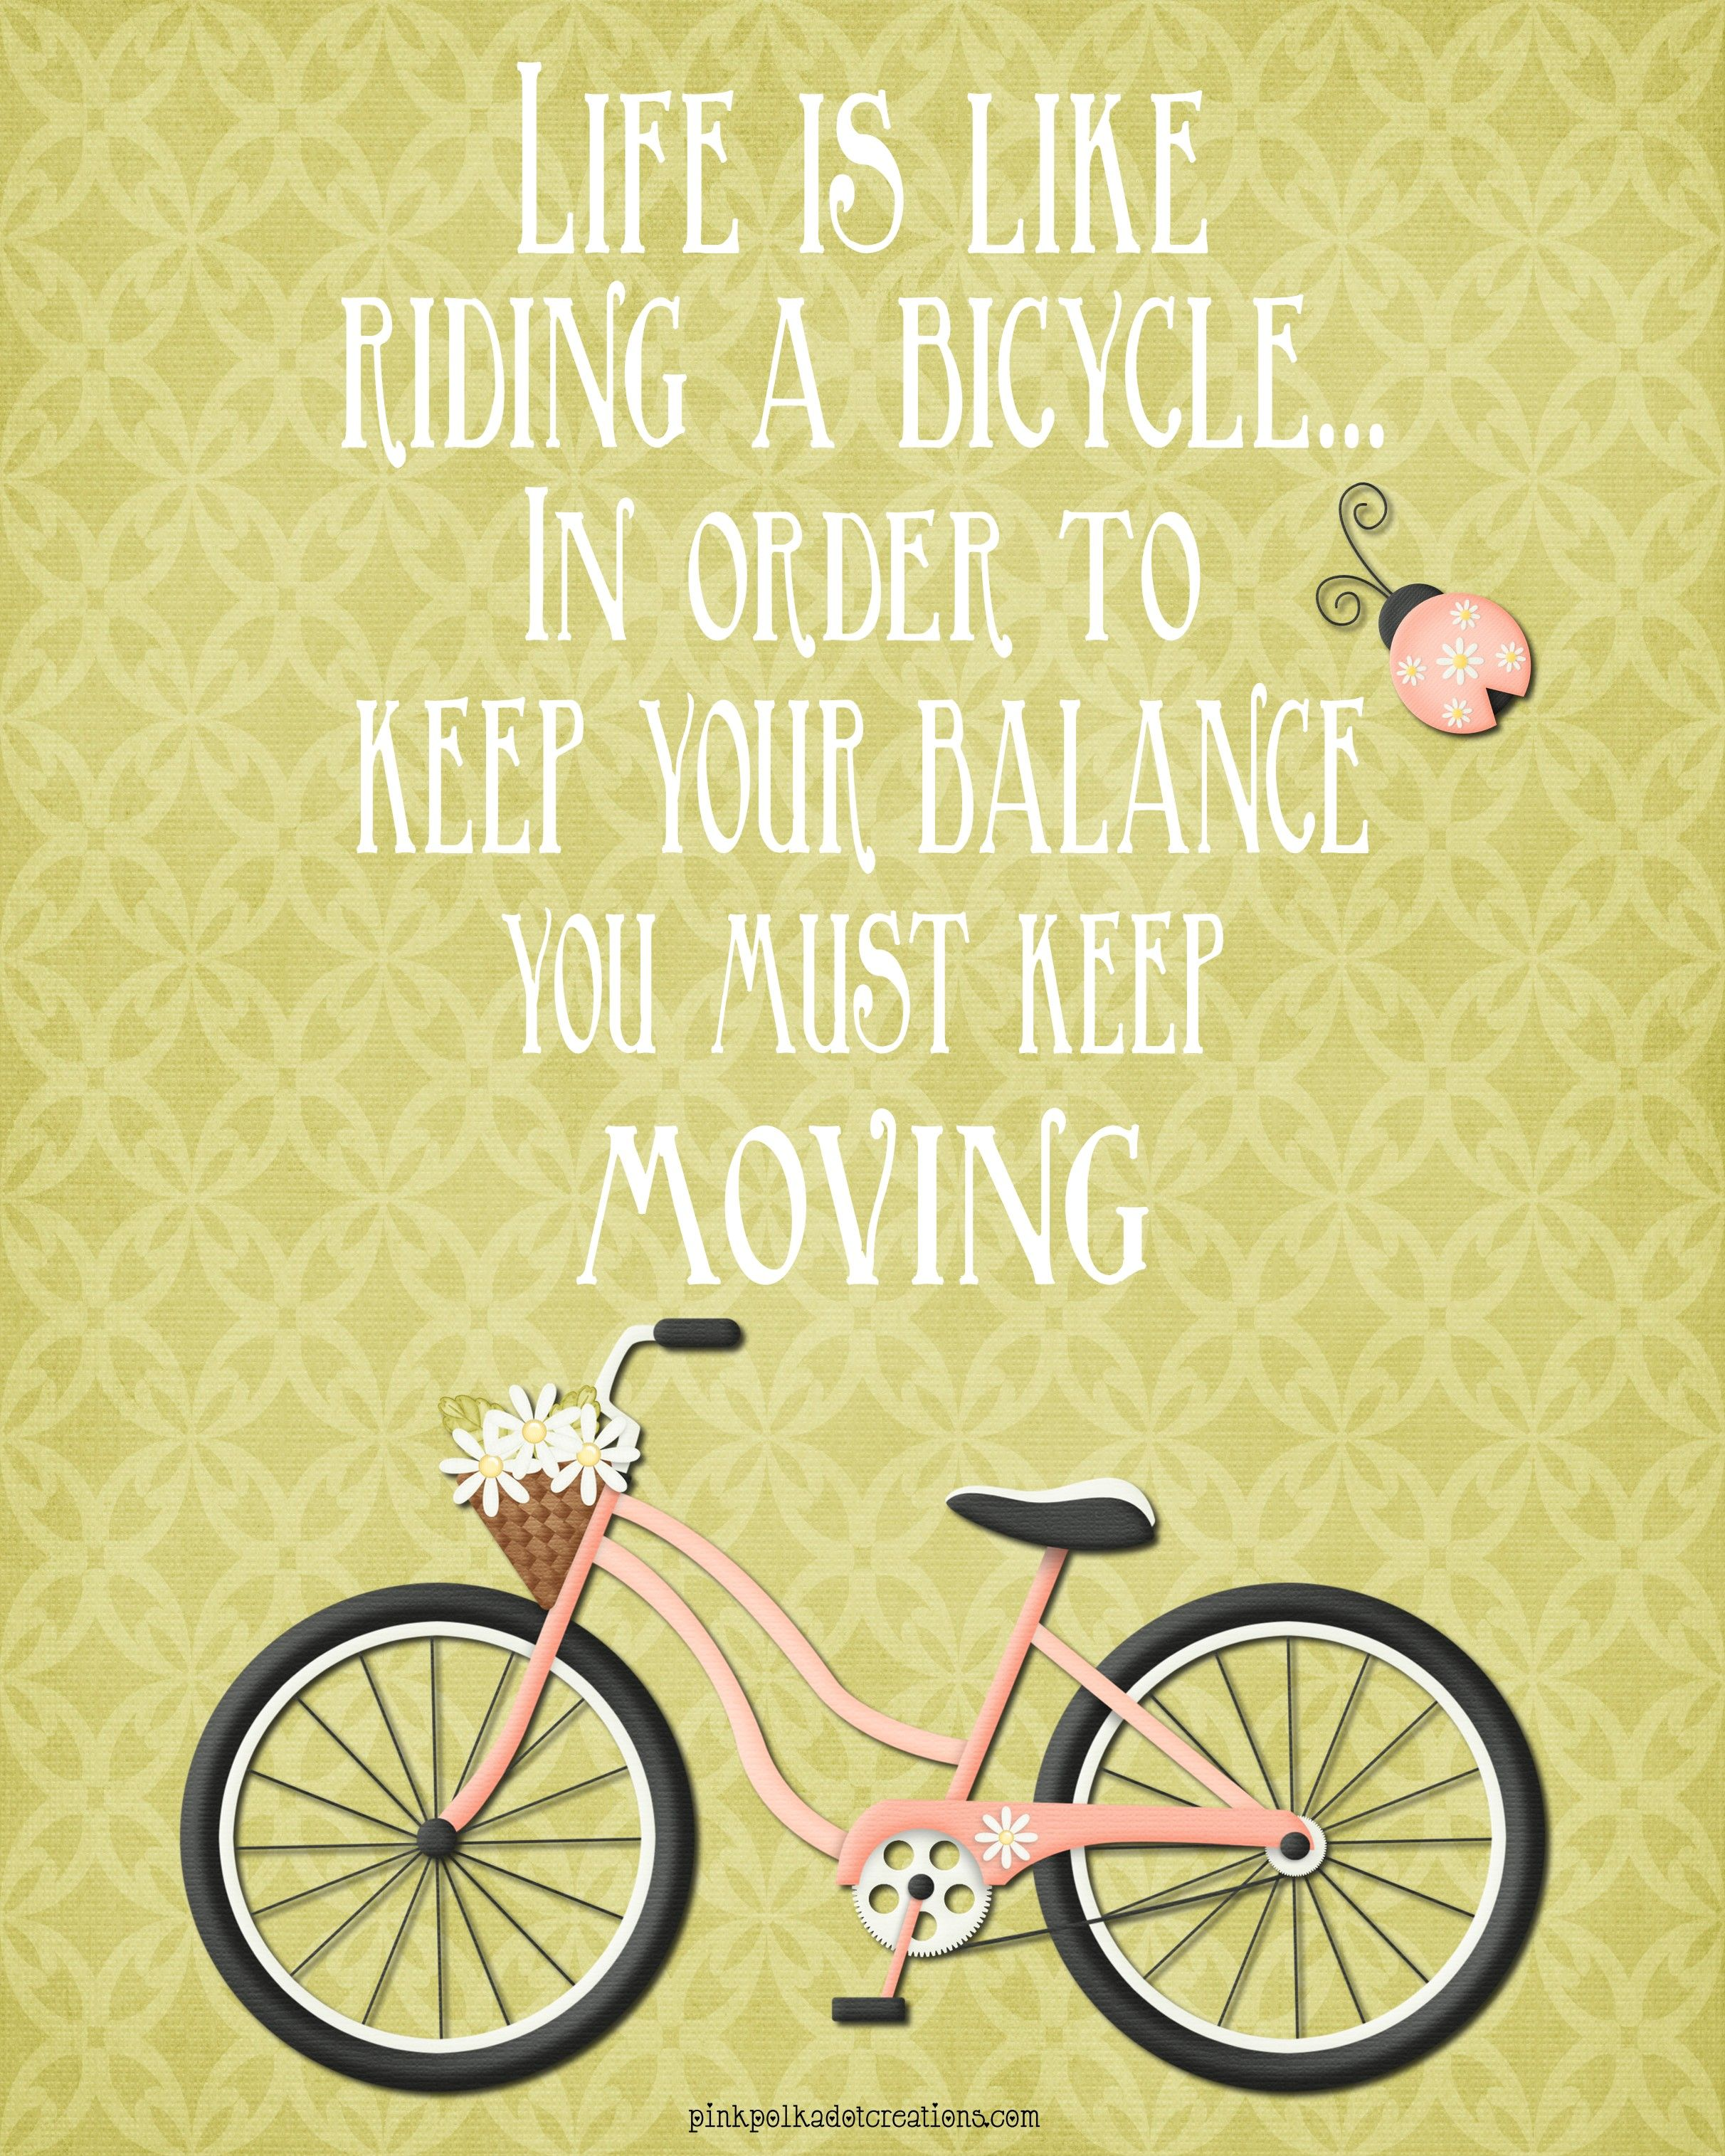 Thurs. ThoughtLife is Like Riding a Bicycle Cycling